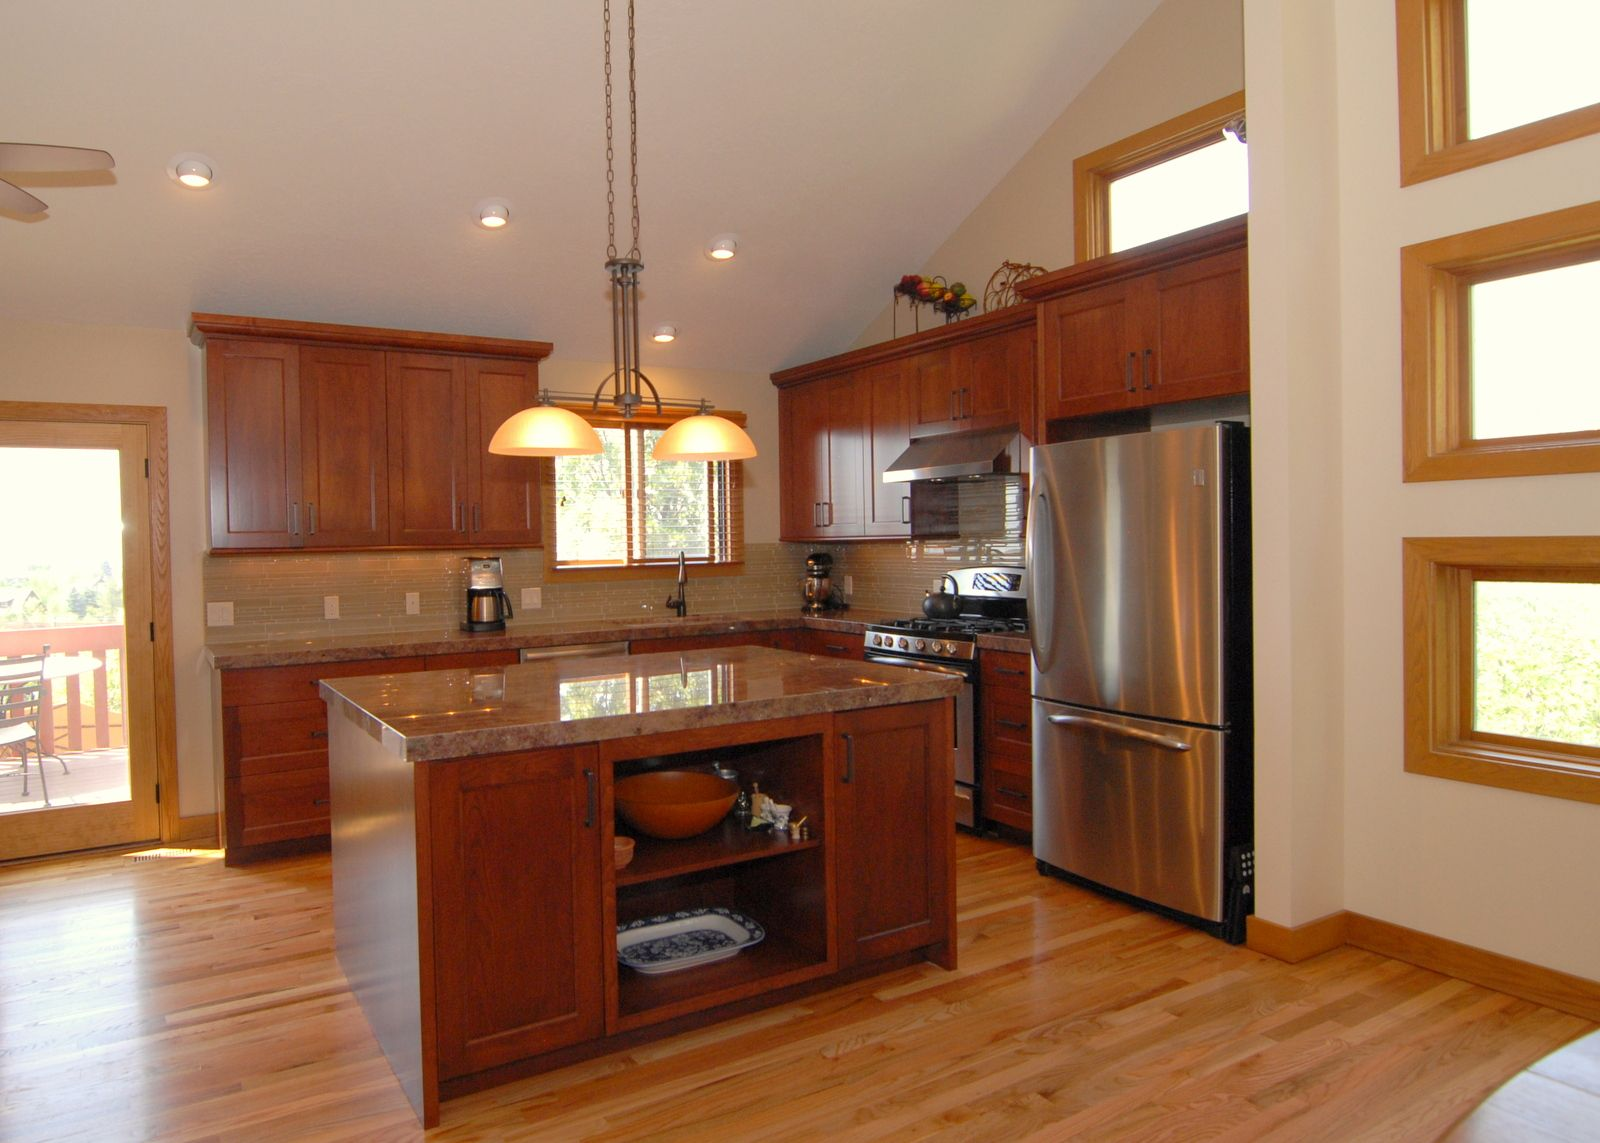 l shaped kitchen remodels before after pictures enzy living recent kitchen remodel before on l kitchen remodel id=37879